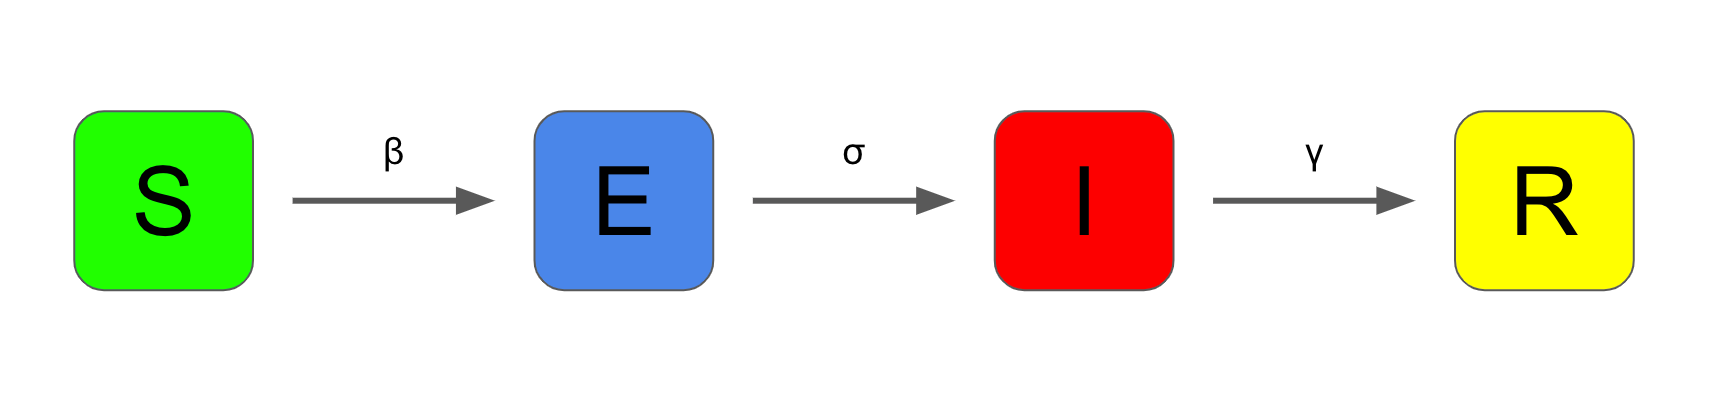 Four compartments. S flows into E, E flows into I, I flows into R. The three arrows are labelled beta, sigma and gamma respectively.